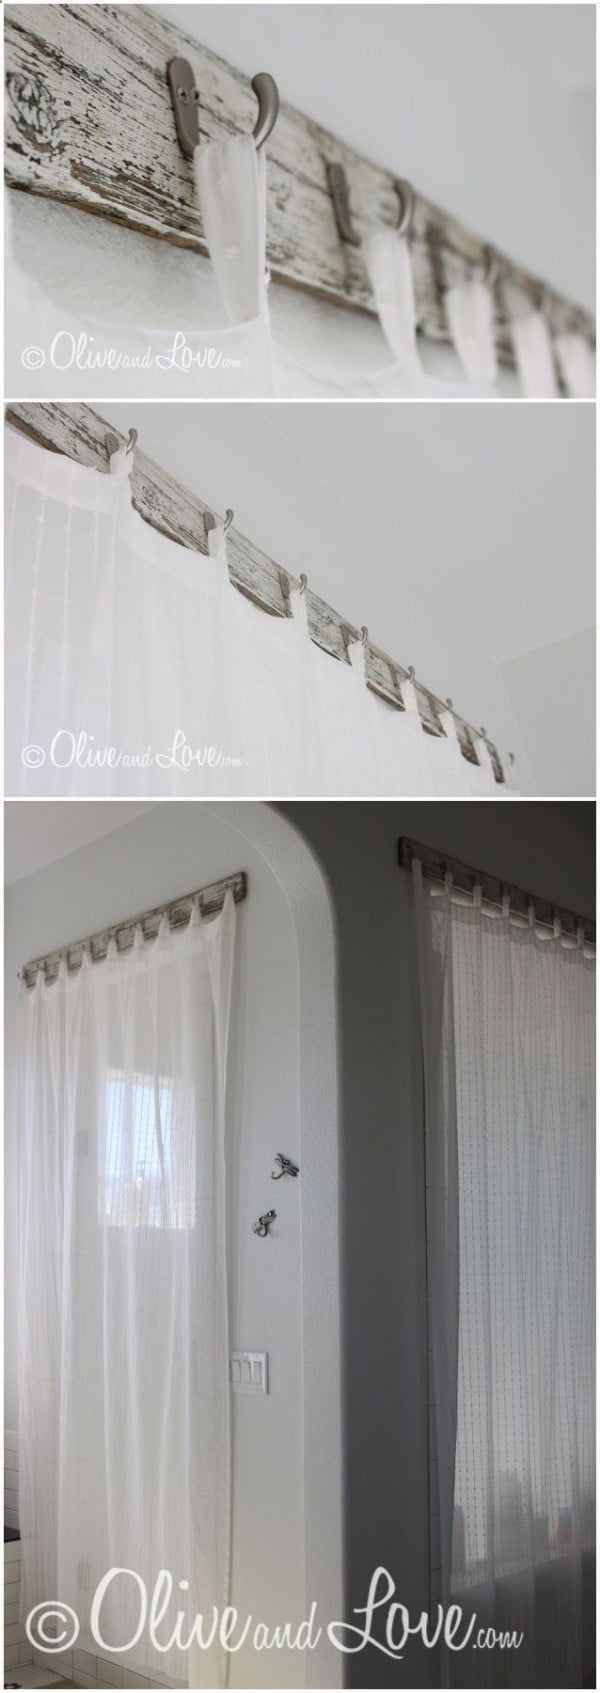 Love the idea for shabby chic curtain hooks